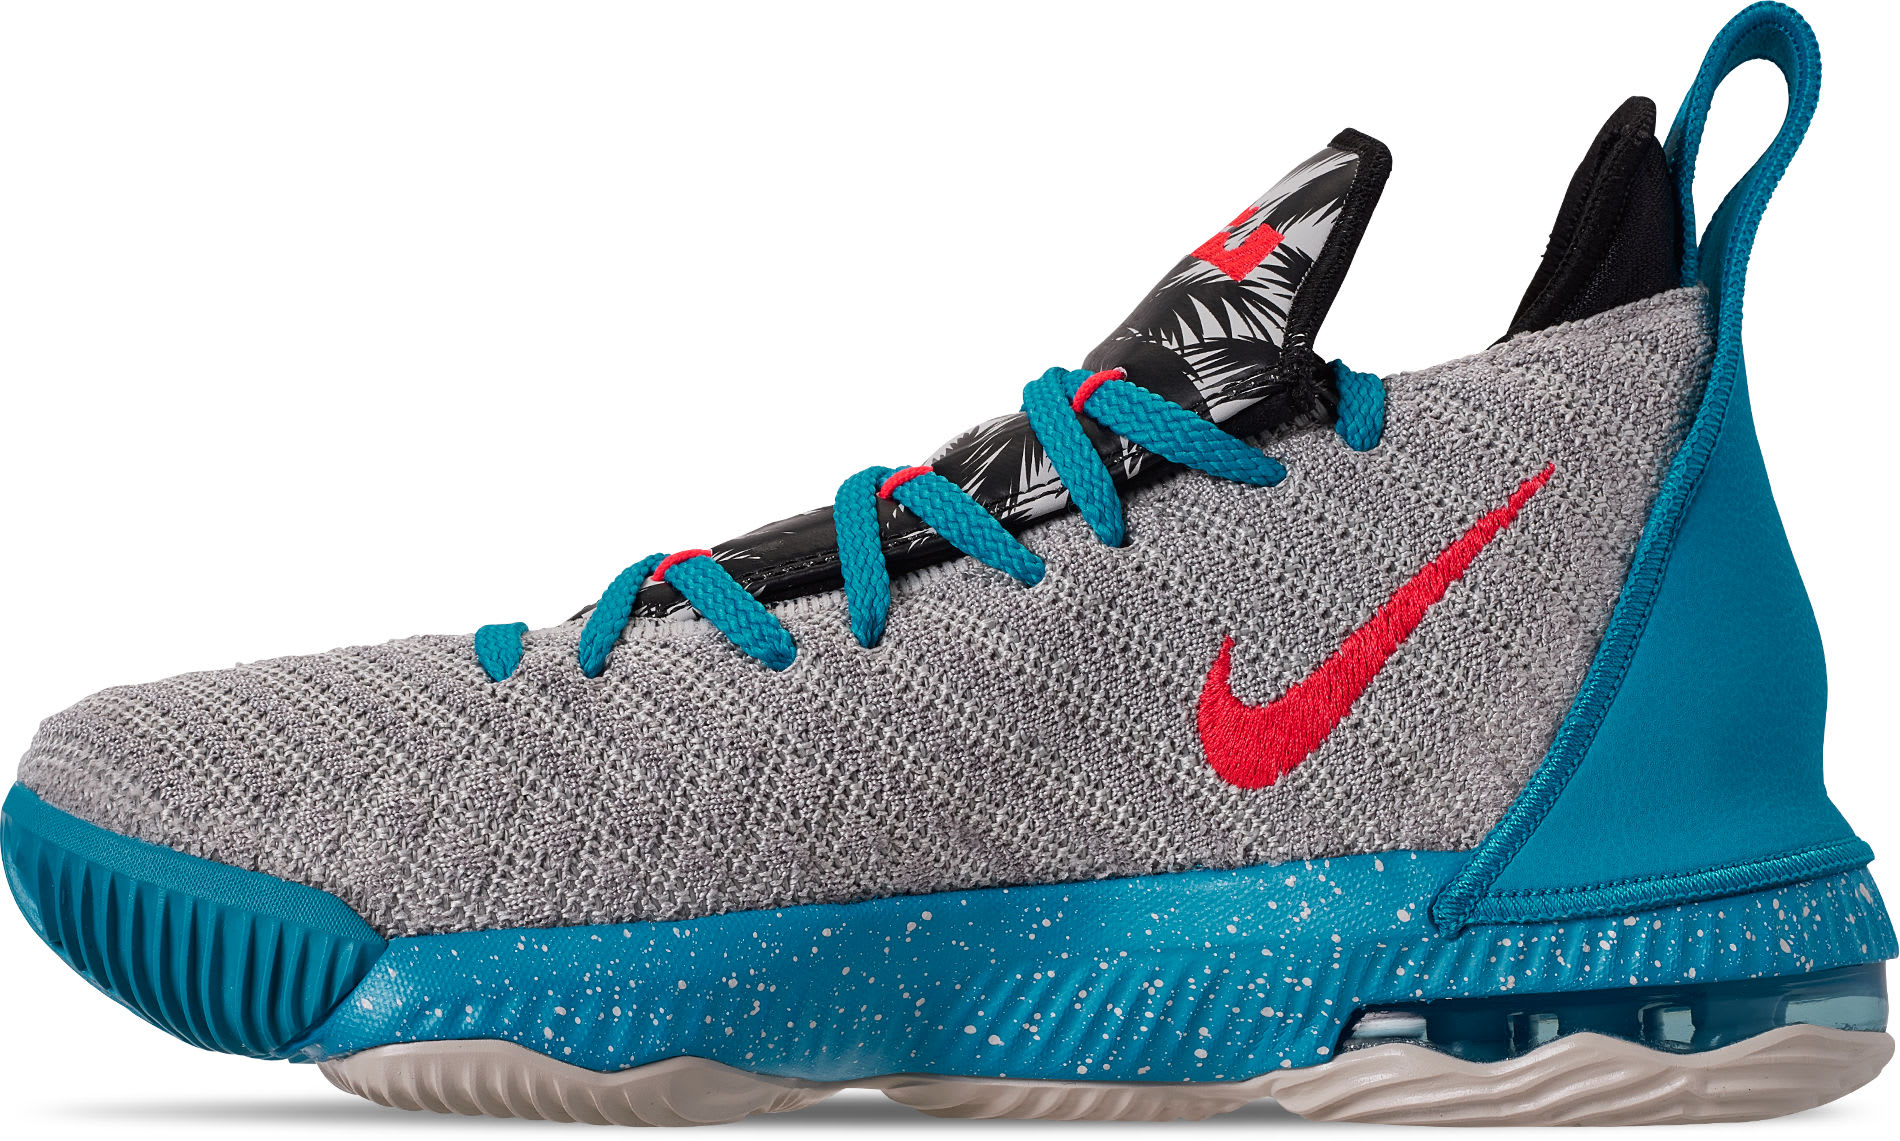 c0d04a18624 Image via Finish Line Nike LeBron 16  South Beach  AQ2465-076 Medial